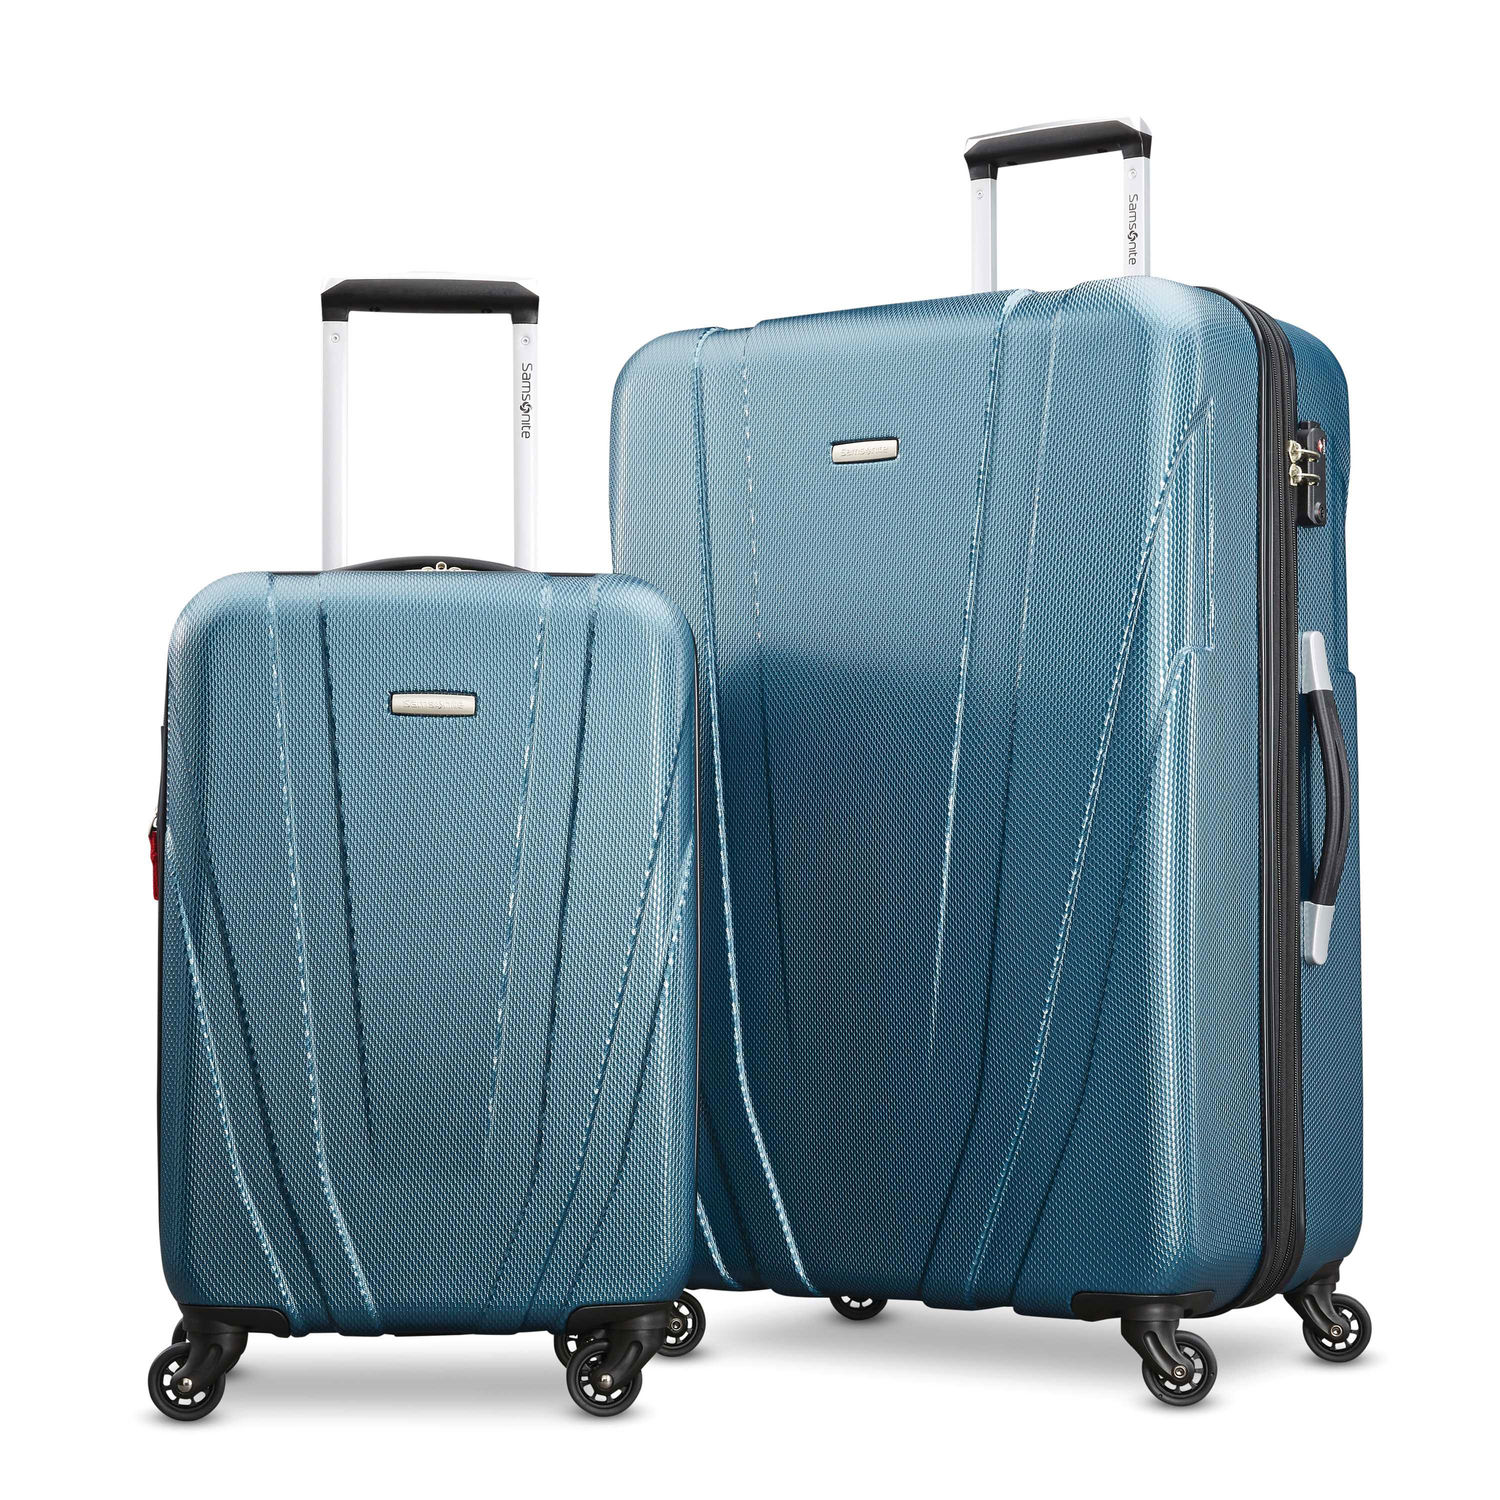 234aa31d7b39 Samsonite: Memorial Day sale: 50% Off Exclusive Luggages + Free ...